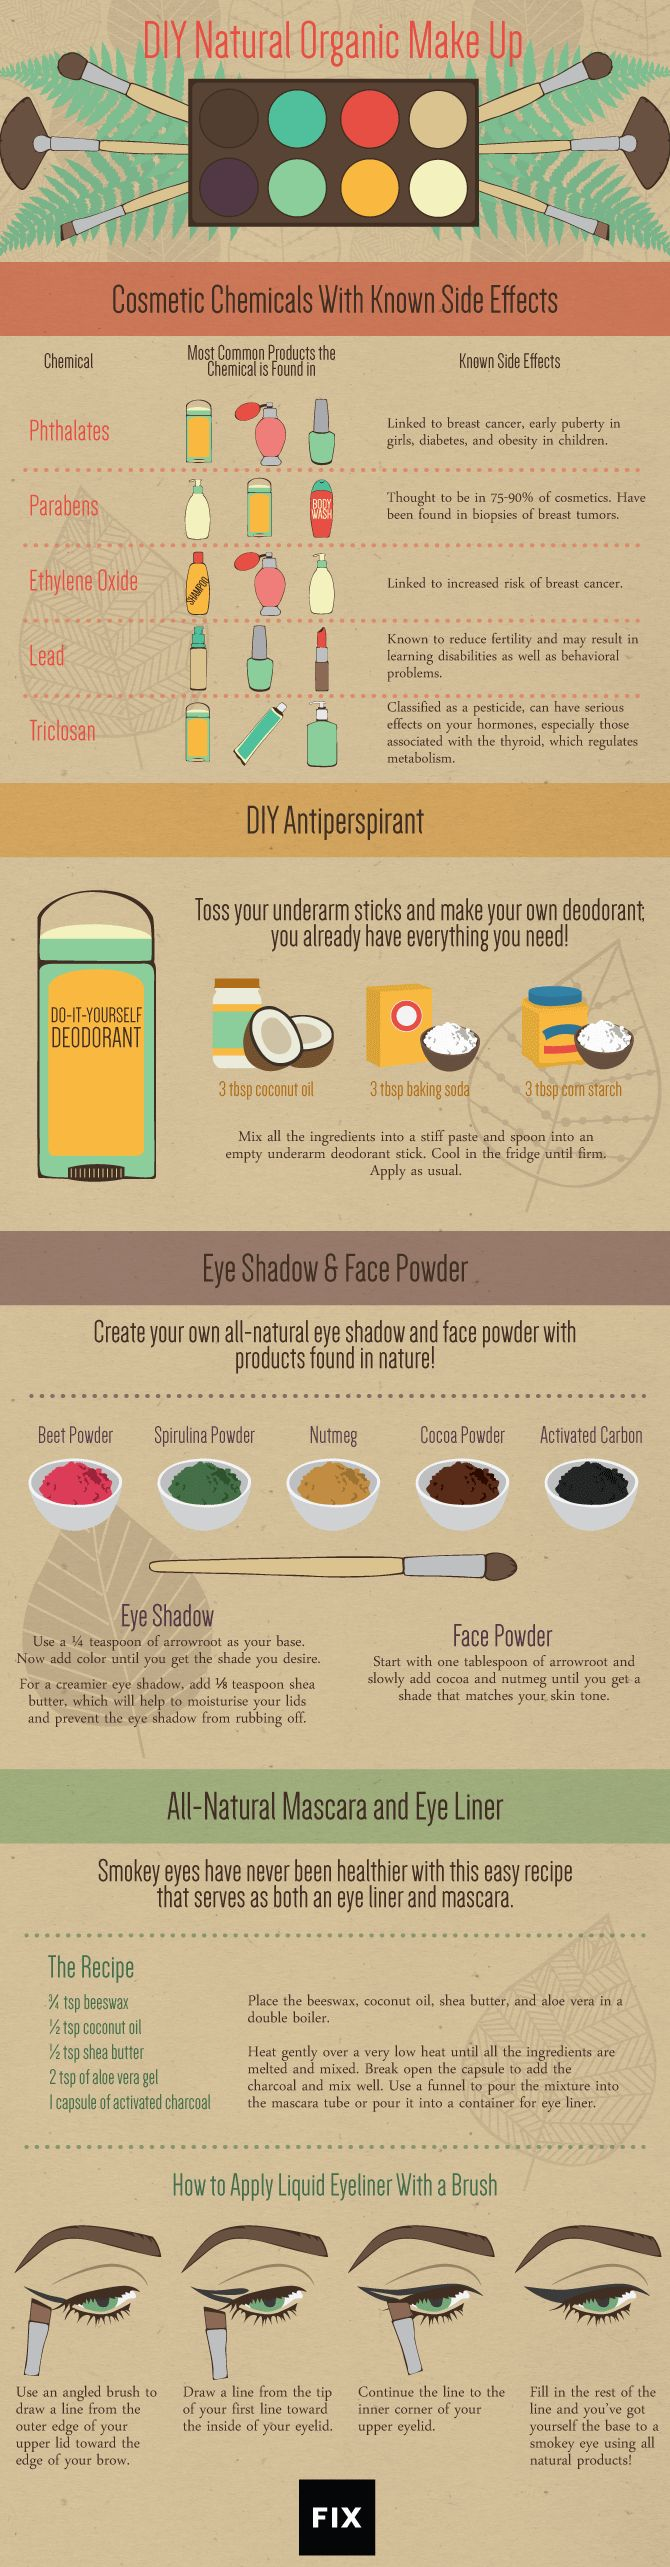 Make Your Own Deodorant & Other Natural Beauty Products (Infographic) - mindbodygreen.com